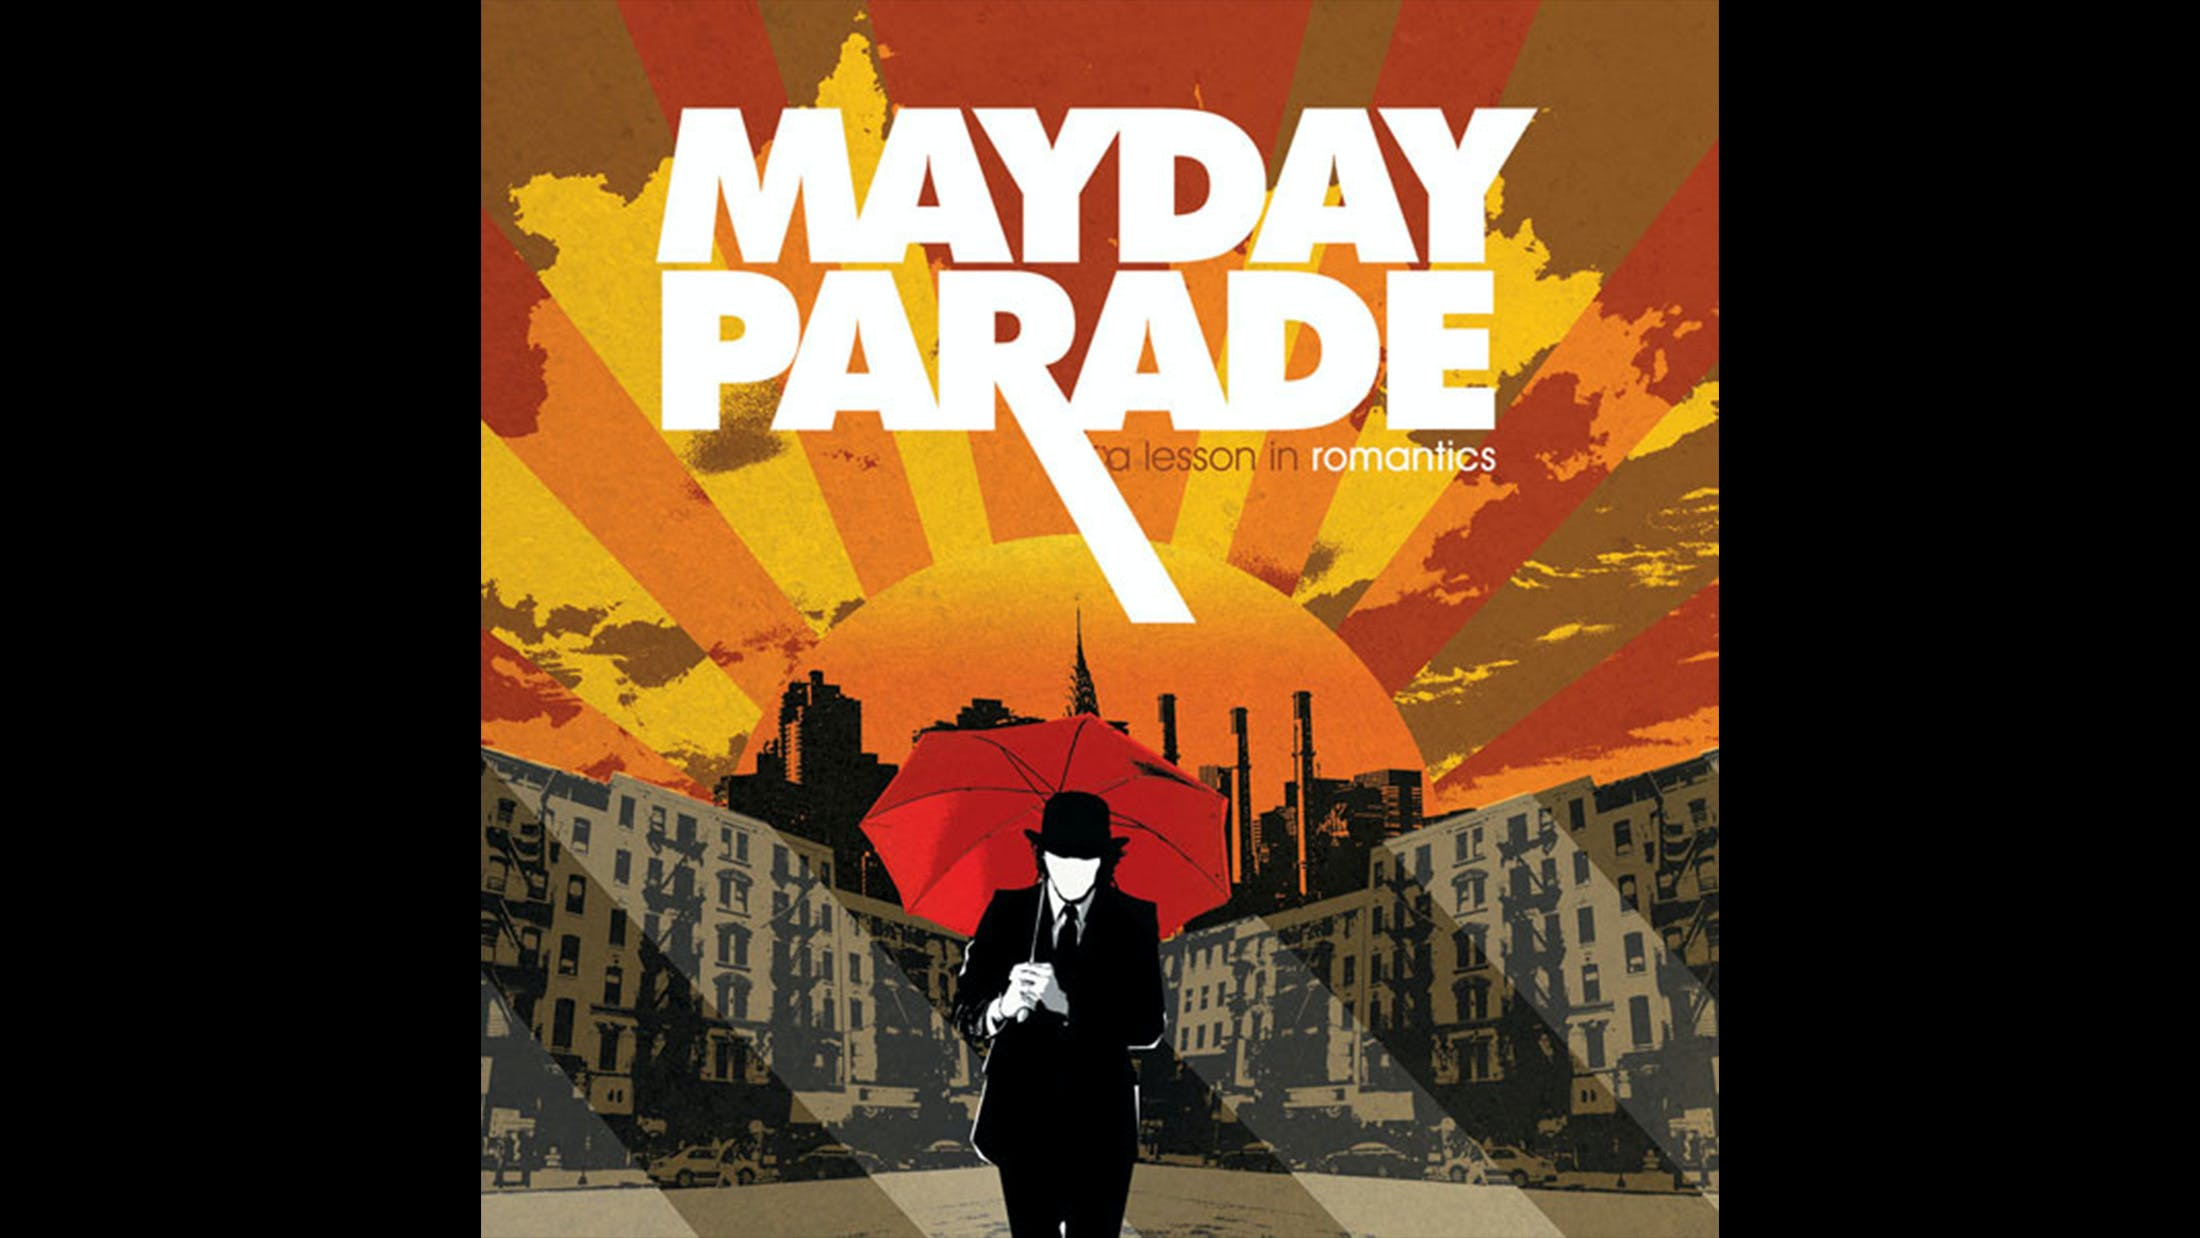 38. Mayday Parade - A Lesson In Romantics